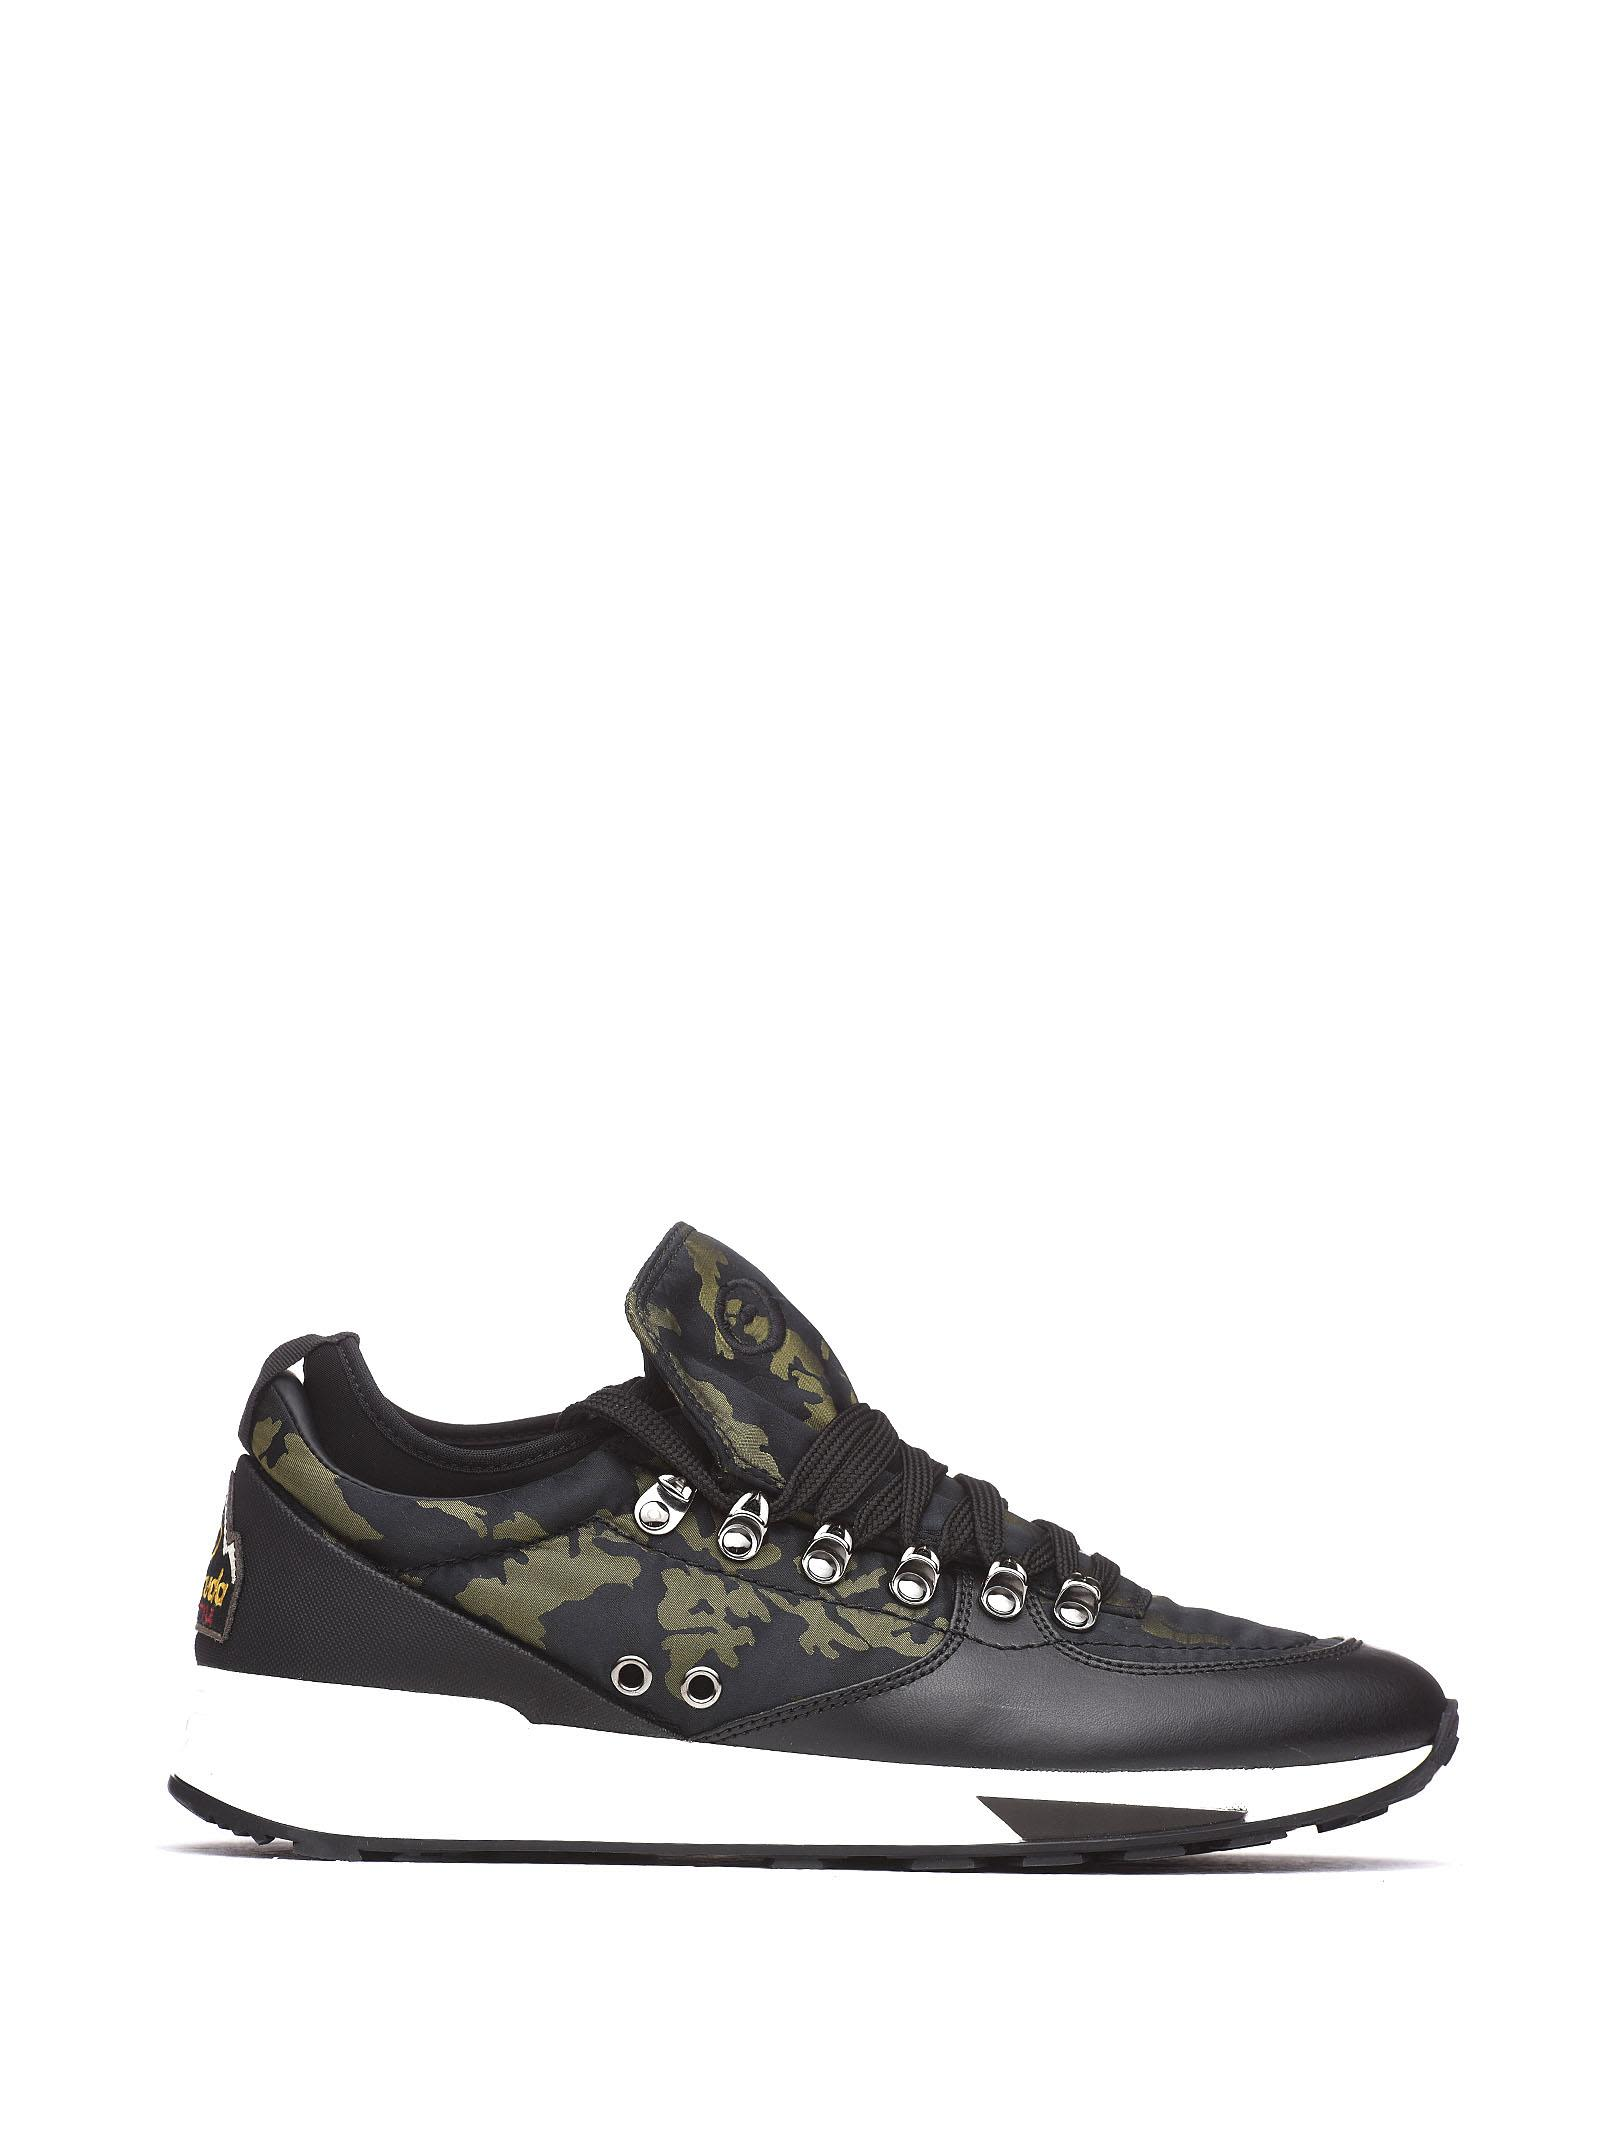 BARRACUDA Camouflage Sneakers in Nero Camouflage